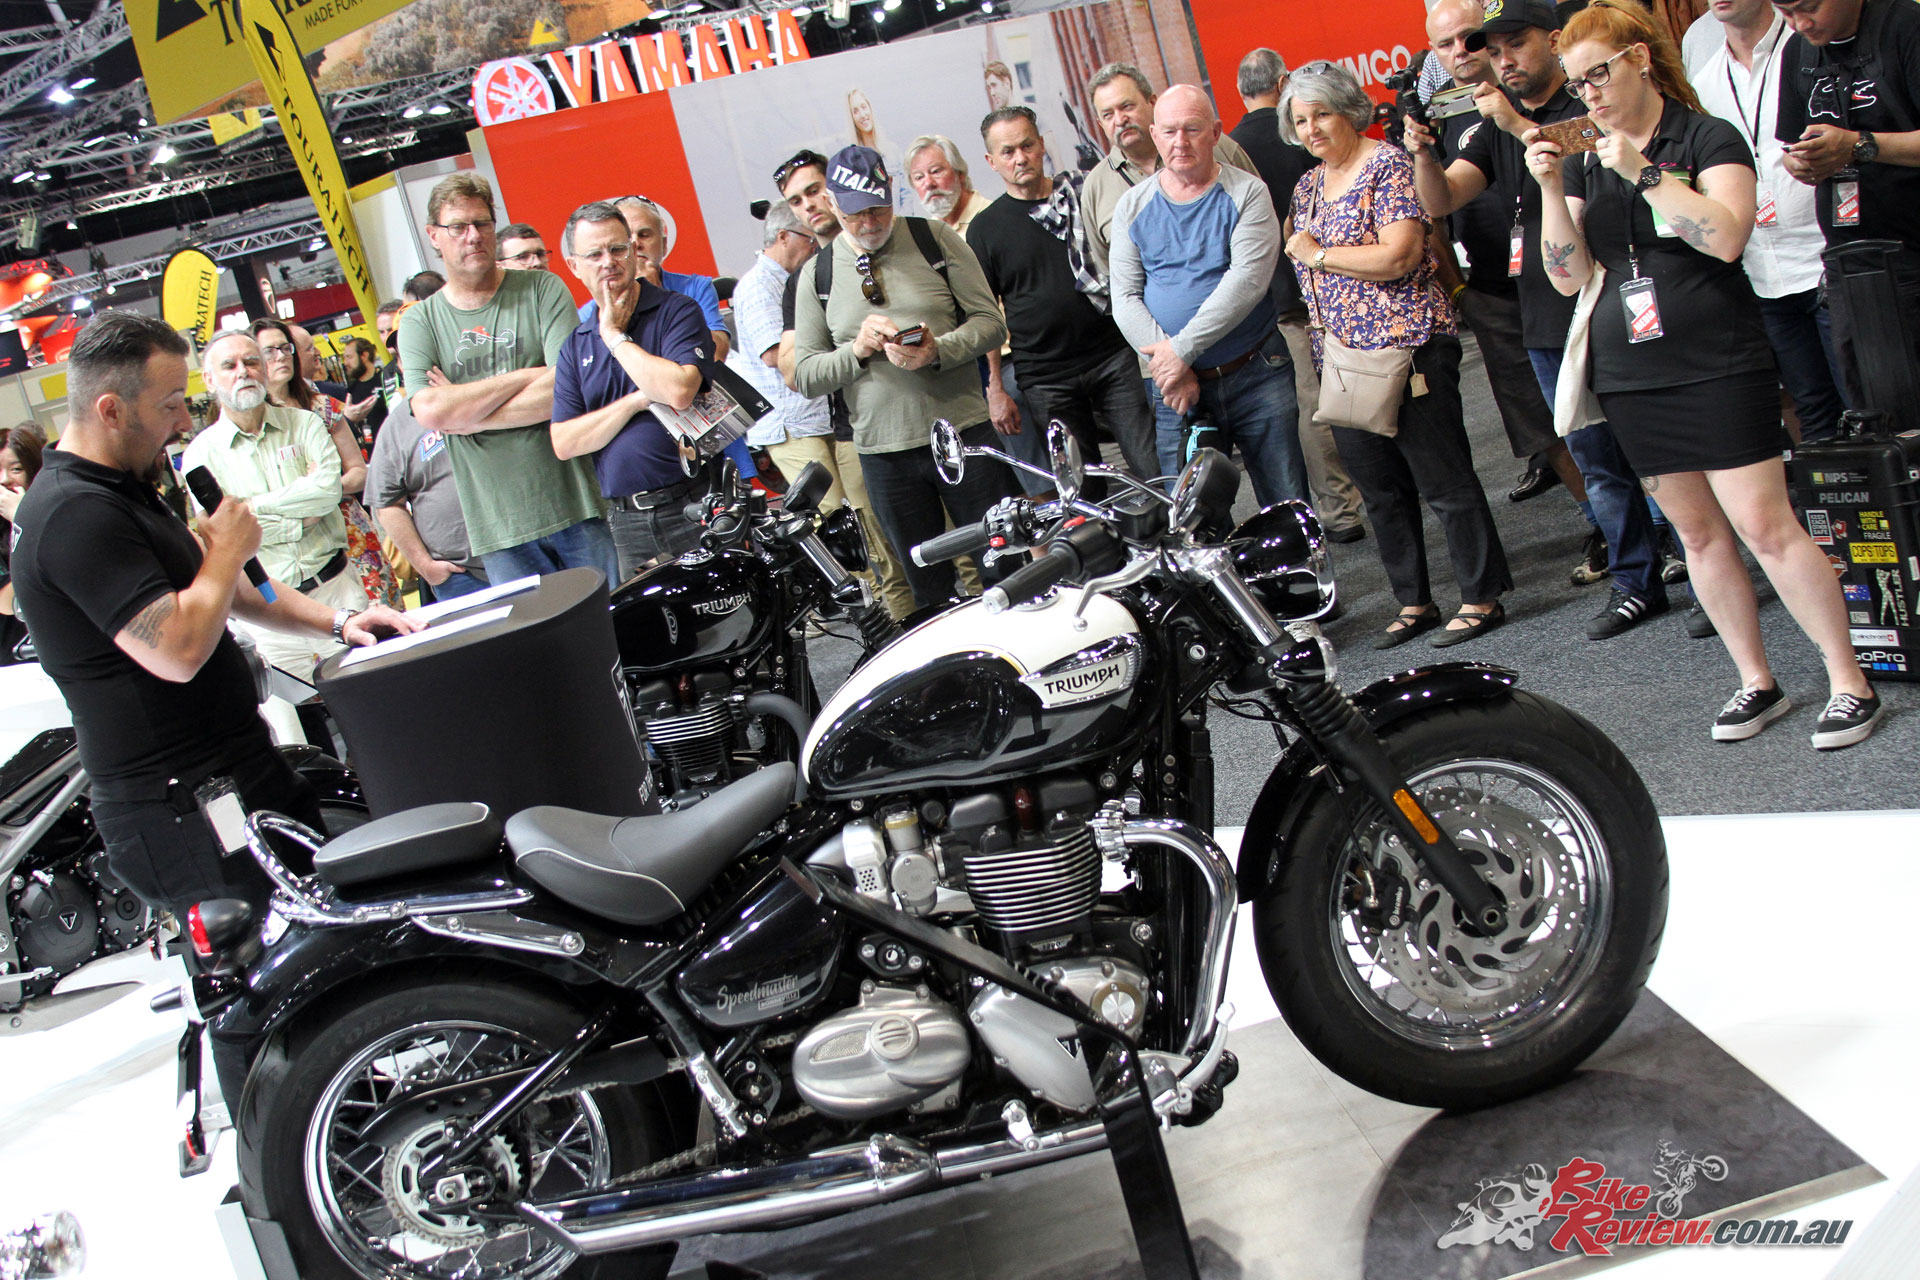 Triumph's Bobber Black and Speedmaster were both on display